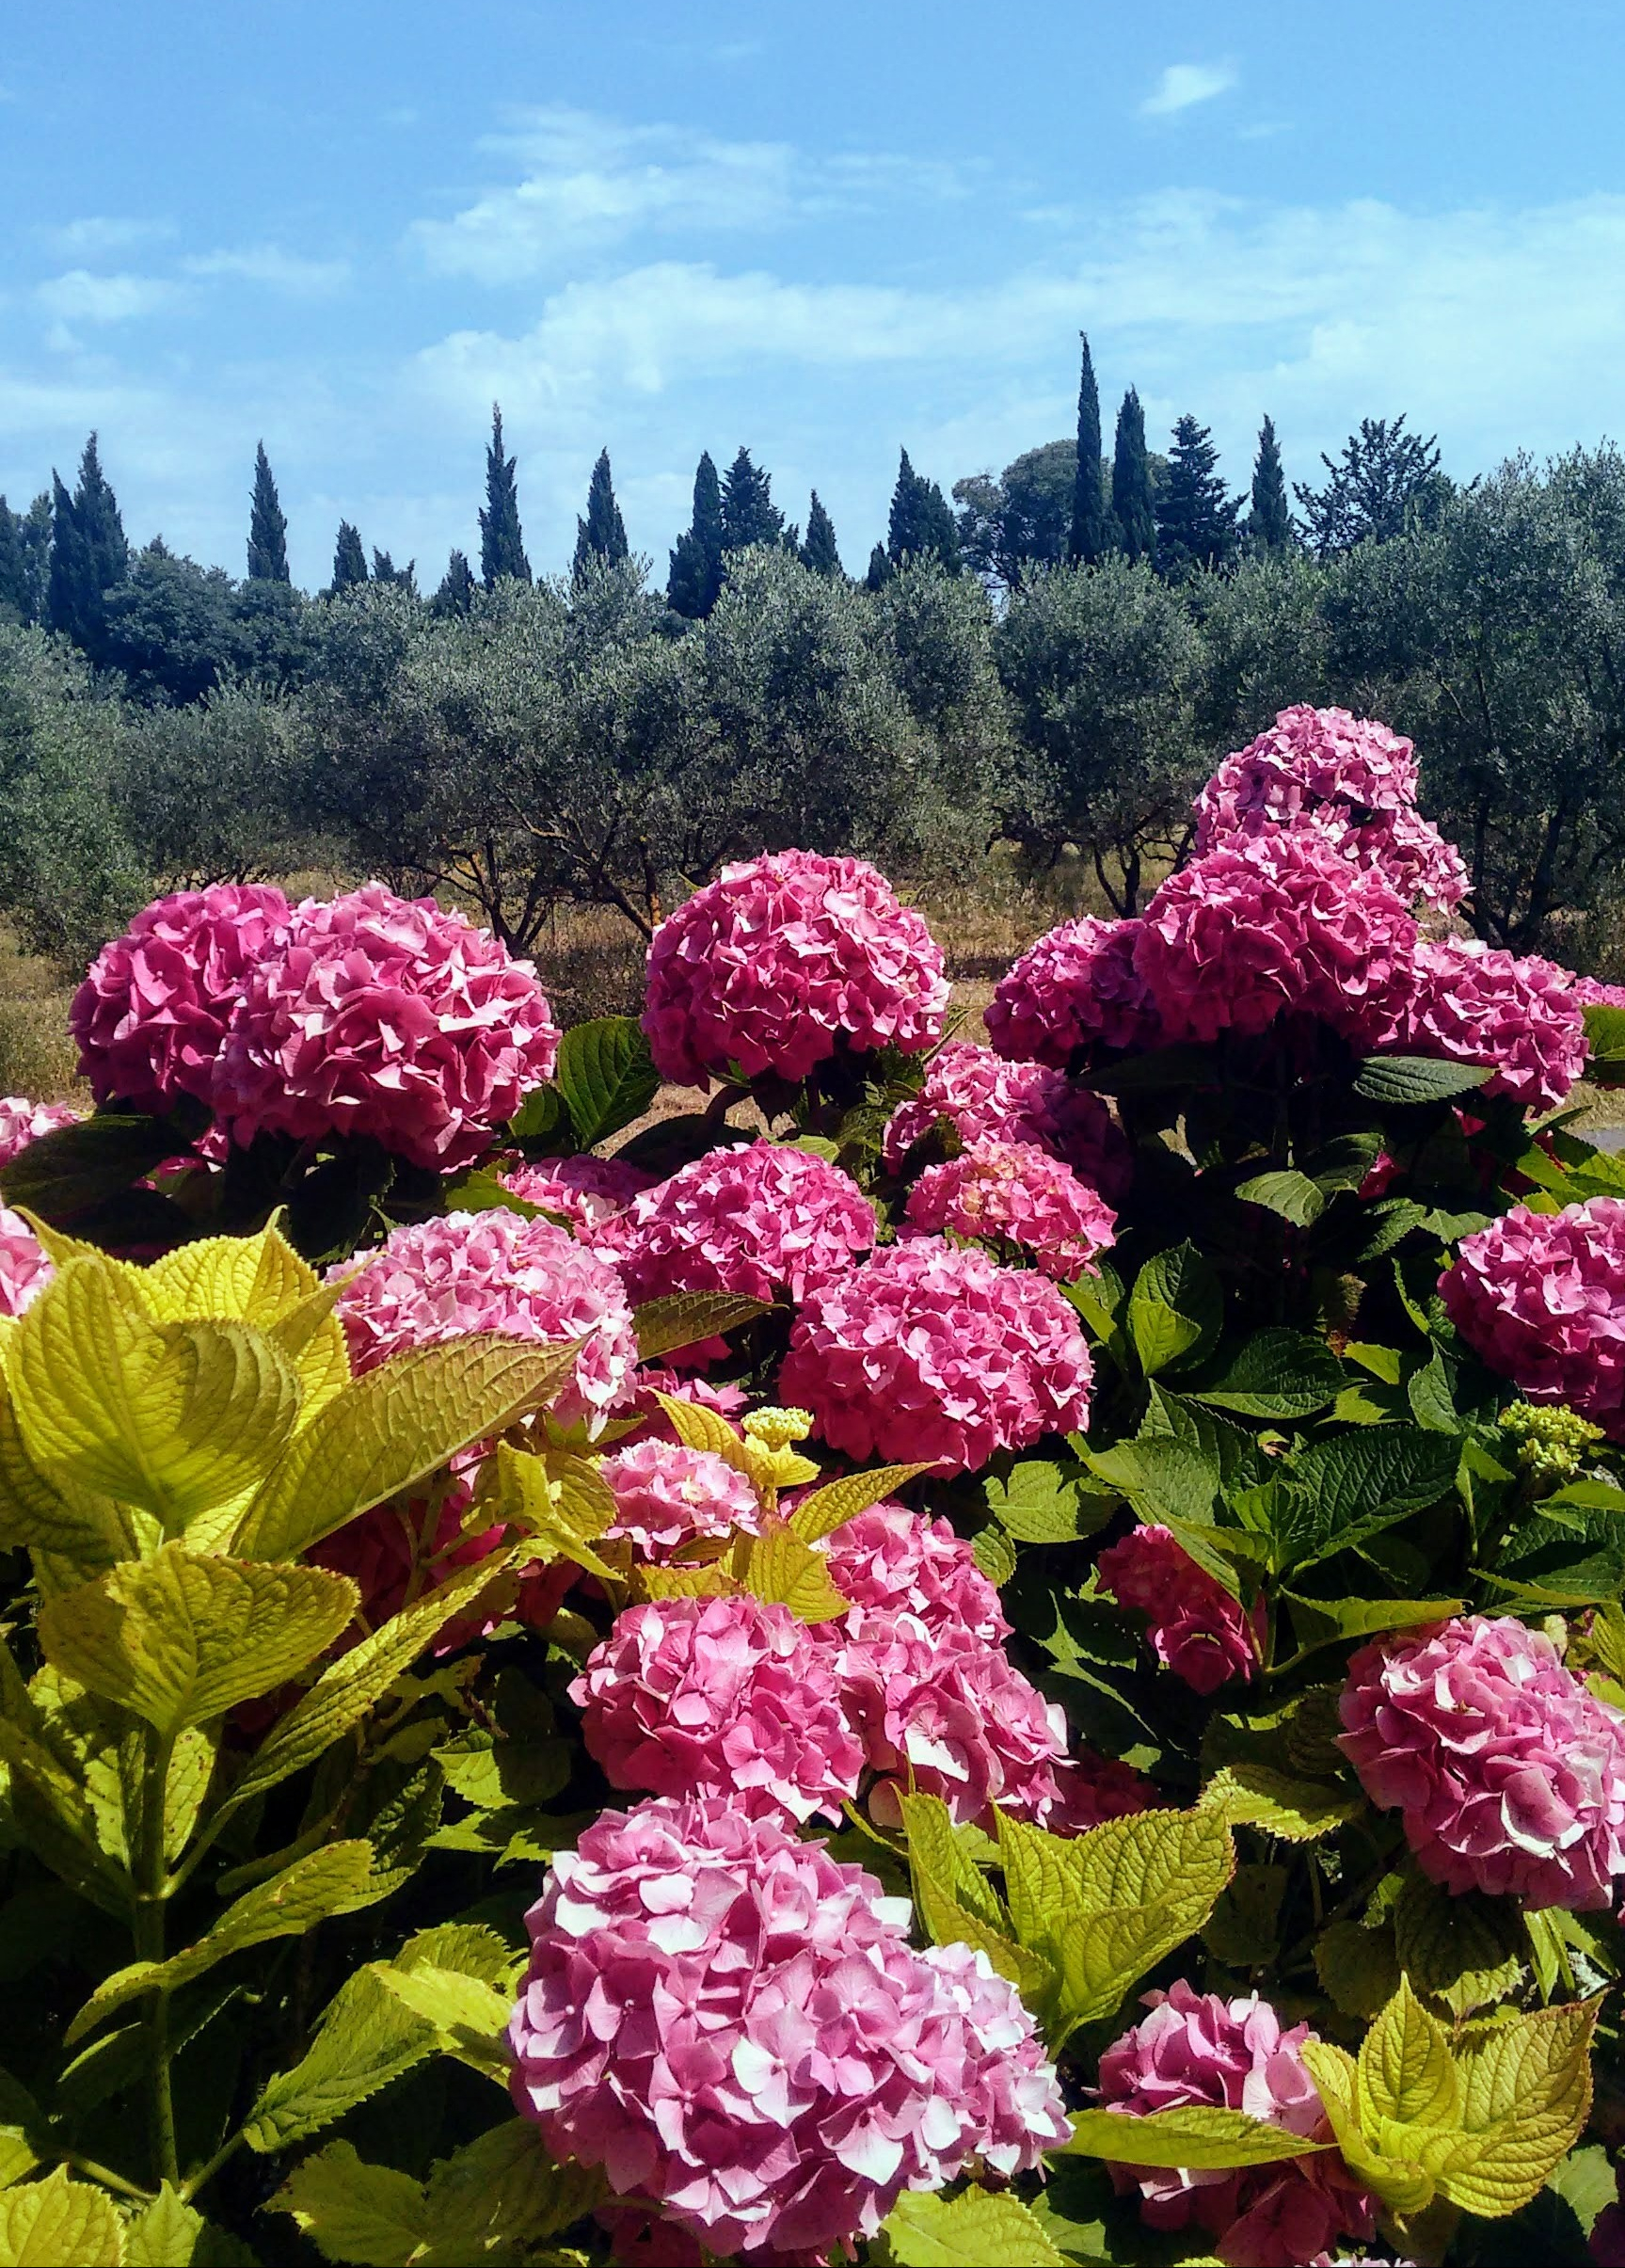 Hot pink hydrangeas shout summer in St. Remy.